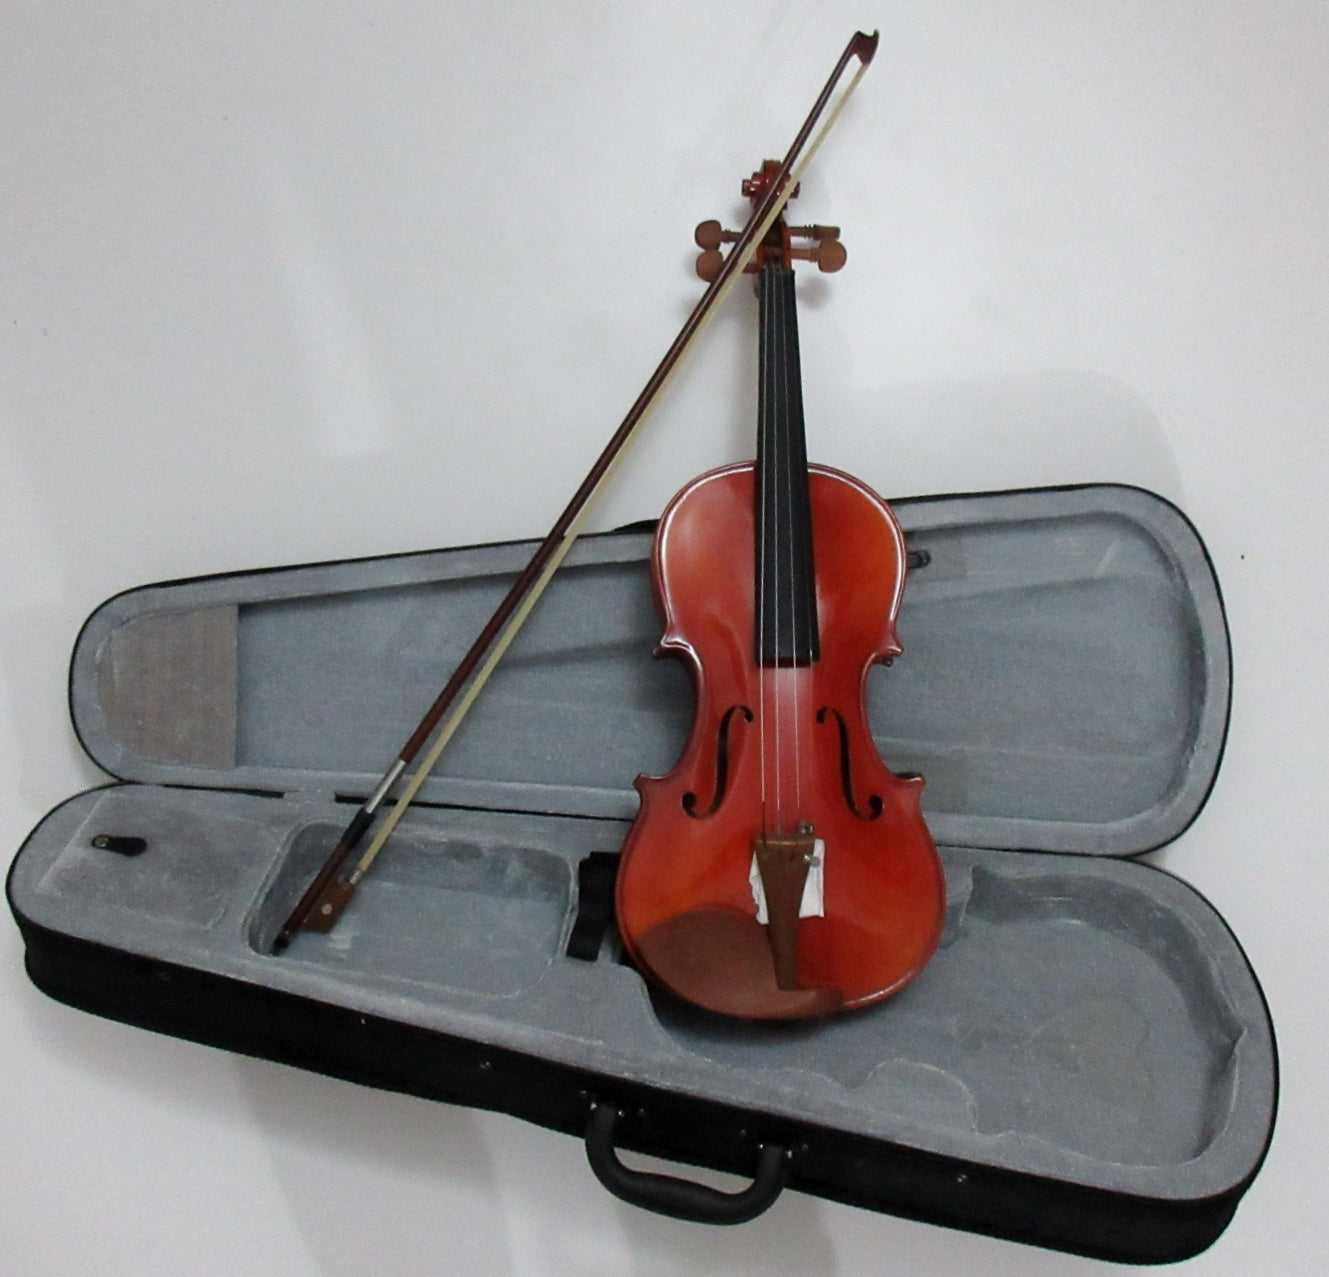 Violin, solid wood, sizes available: 4/4, 3/4, 1/2. 1/4, 1/8, 1/10, 1/16 实木小提琴